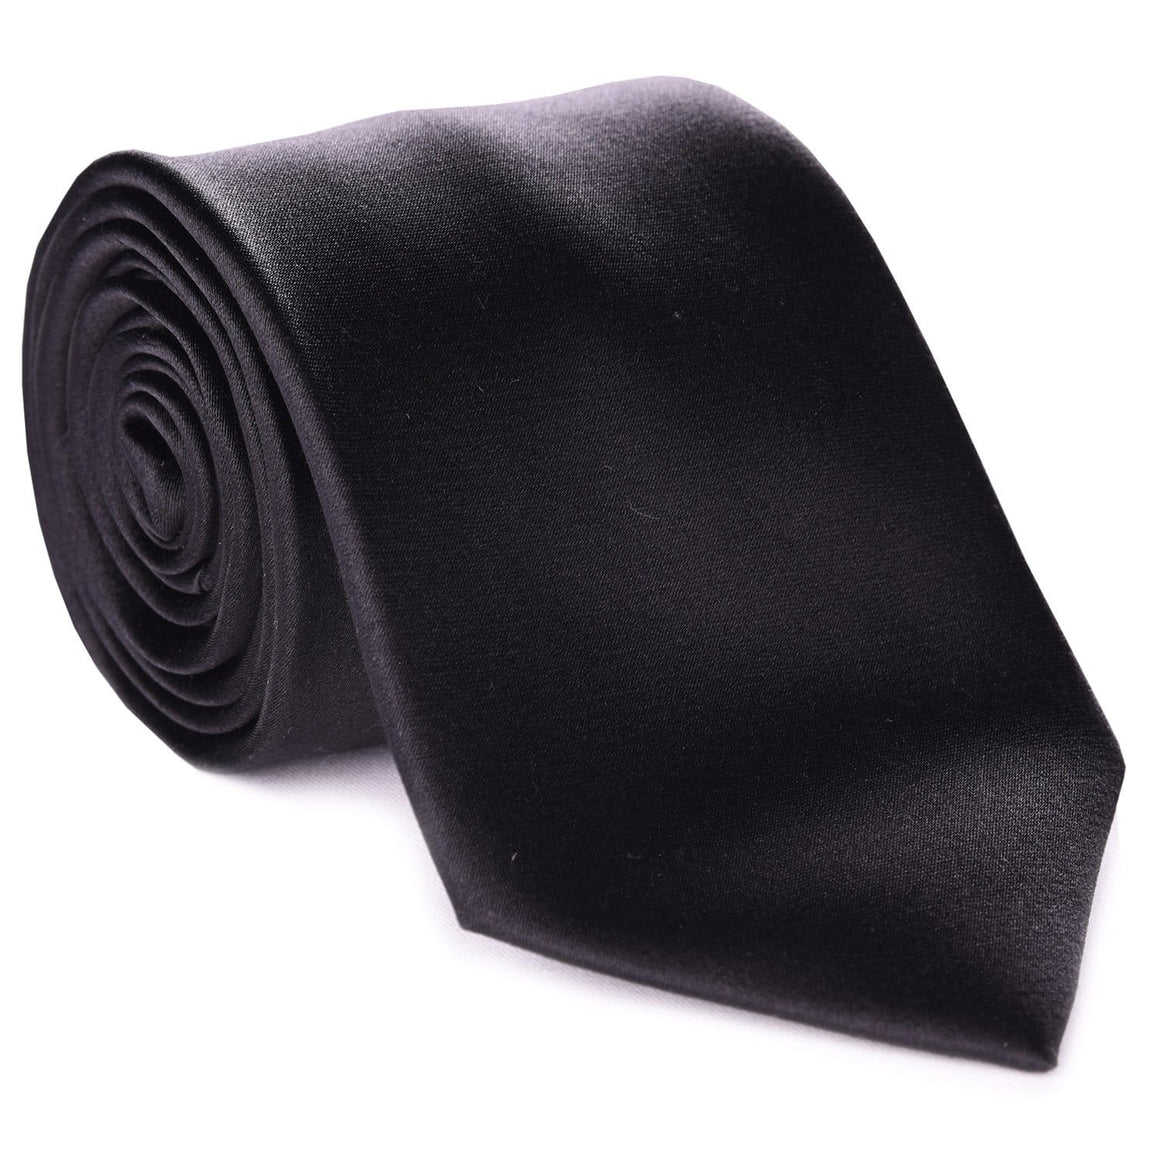 Black Formal Satin Tie